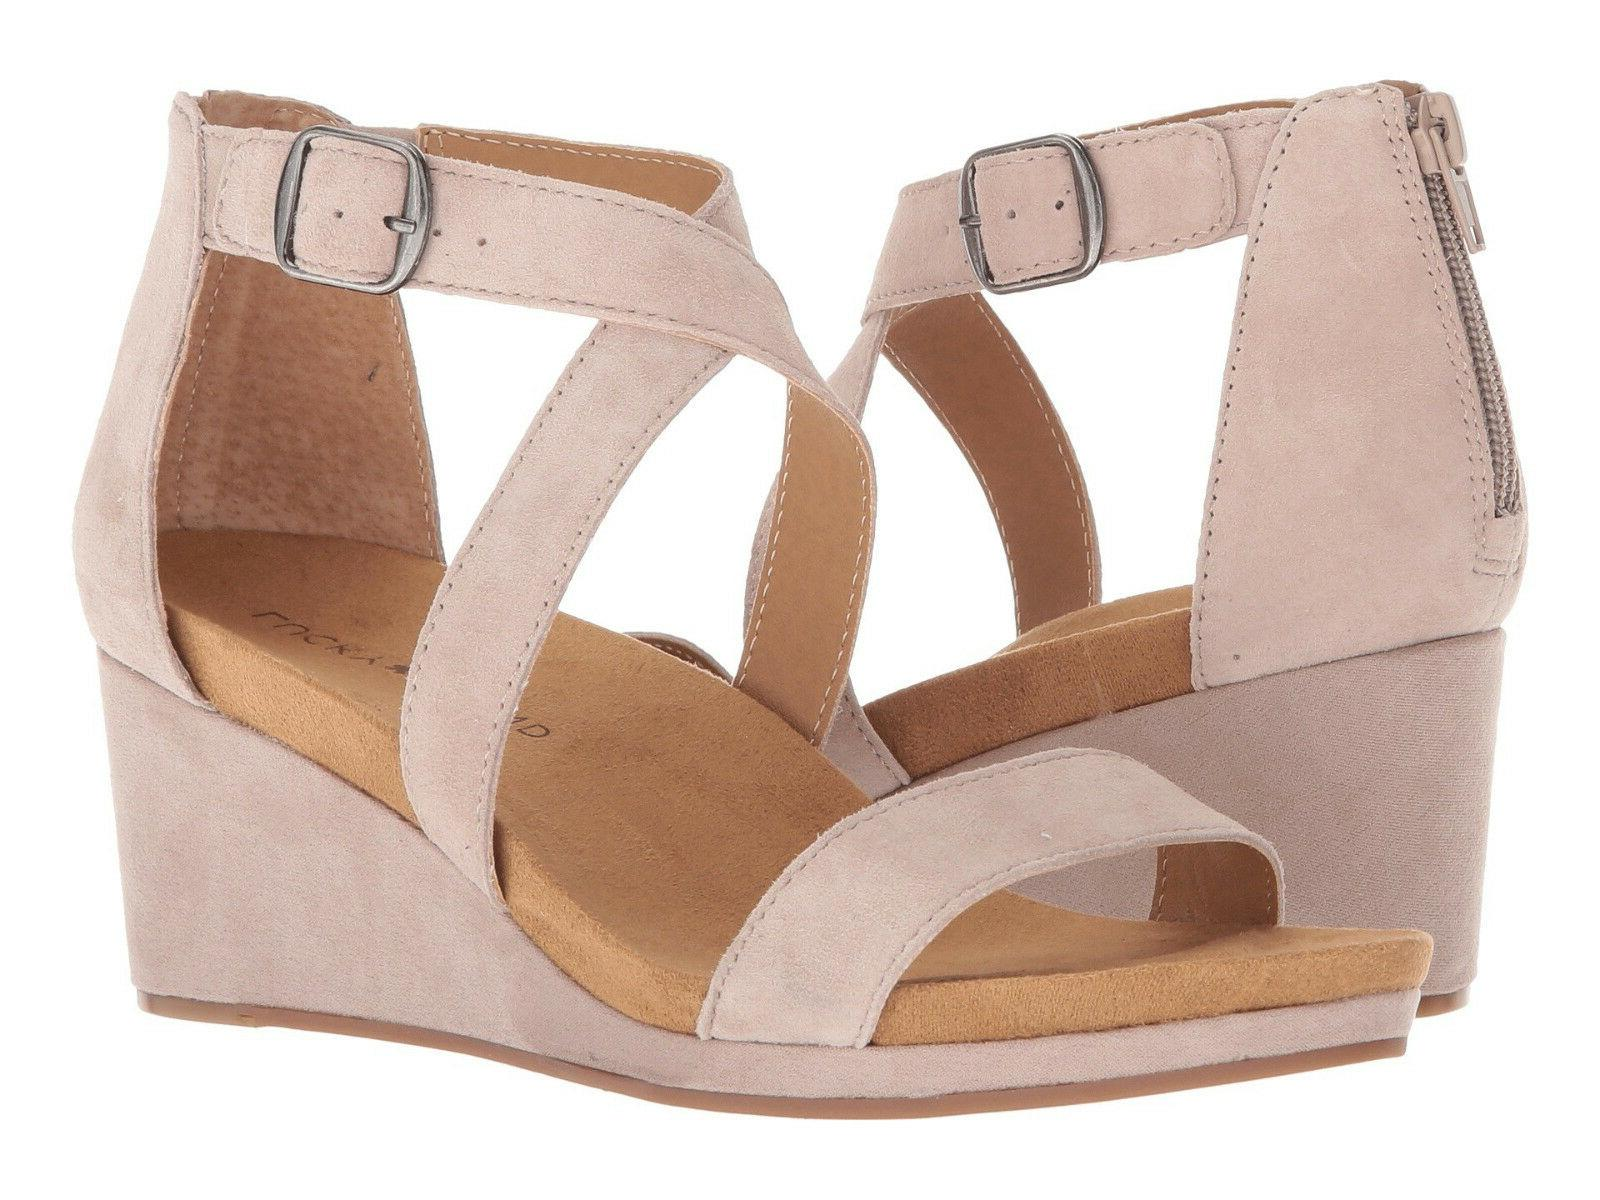 new in box womens kenadee tipsy taupe